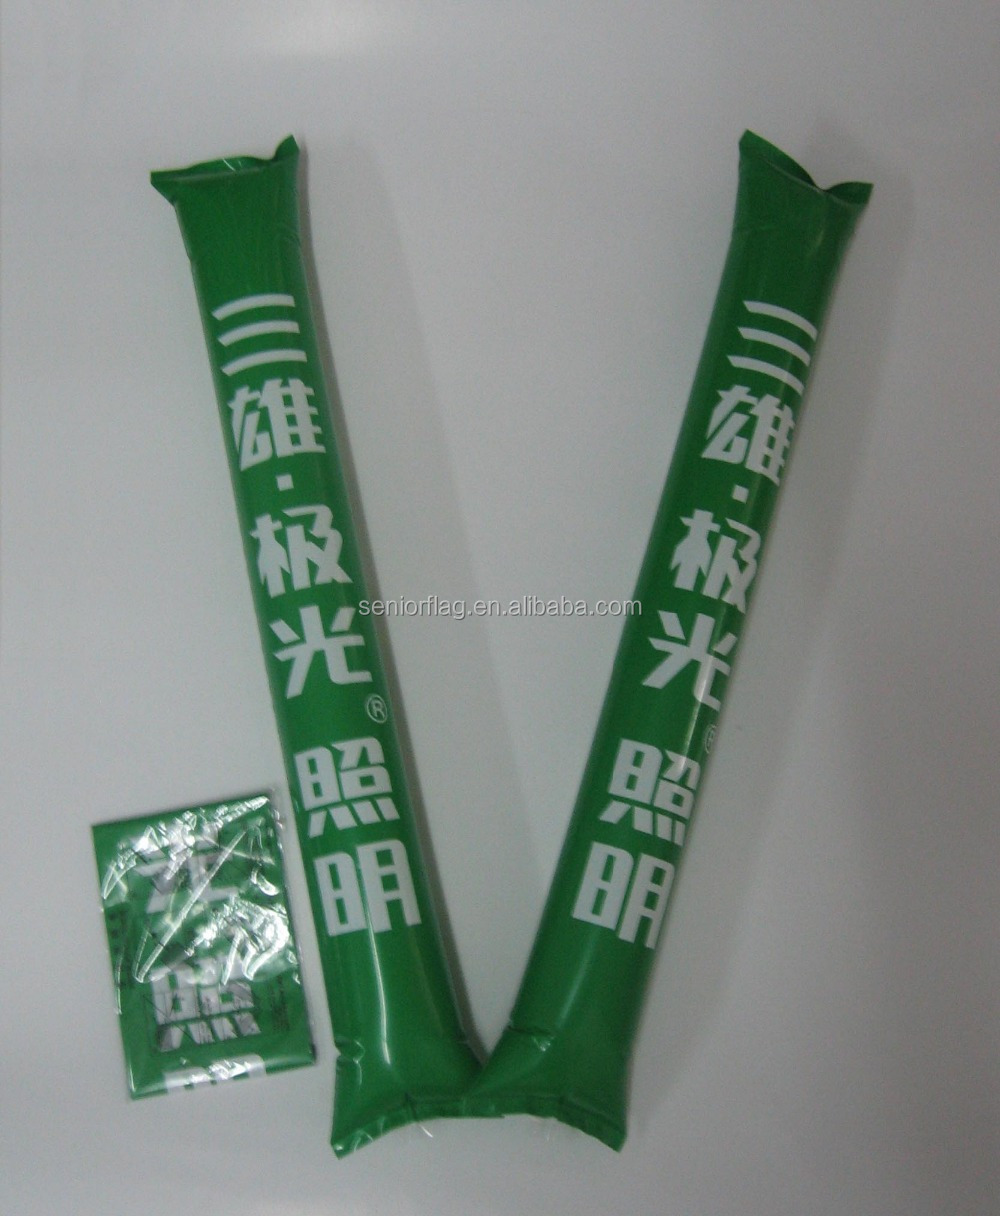 Promotional PE Custom Brand Inflatable Boom Cheering Stick